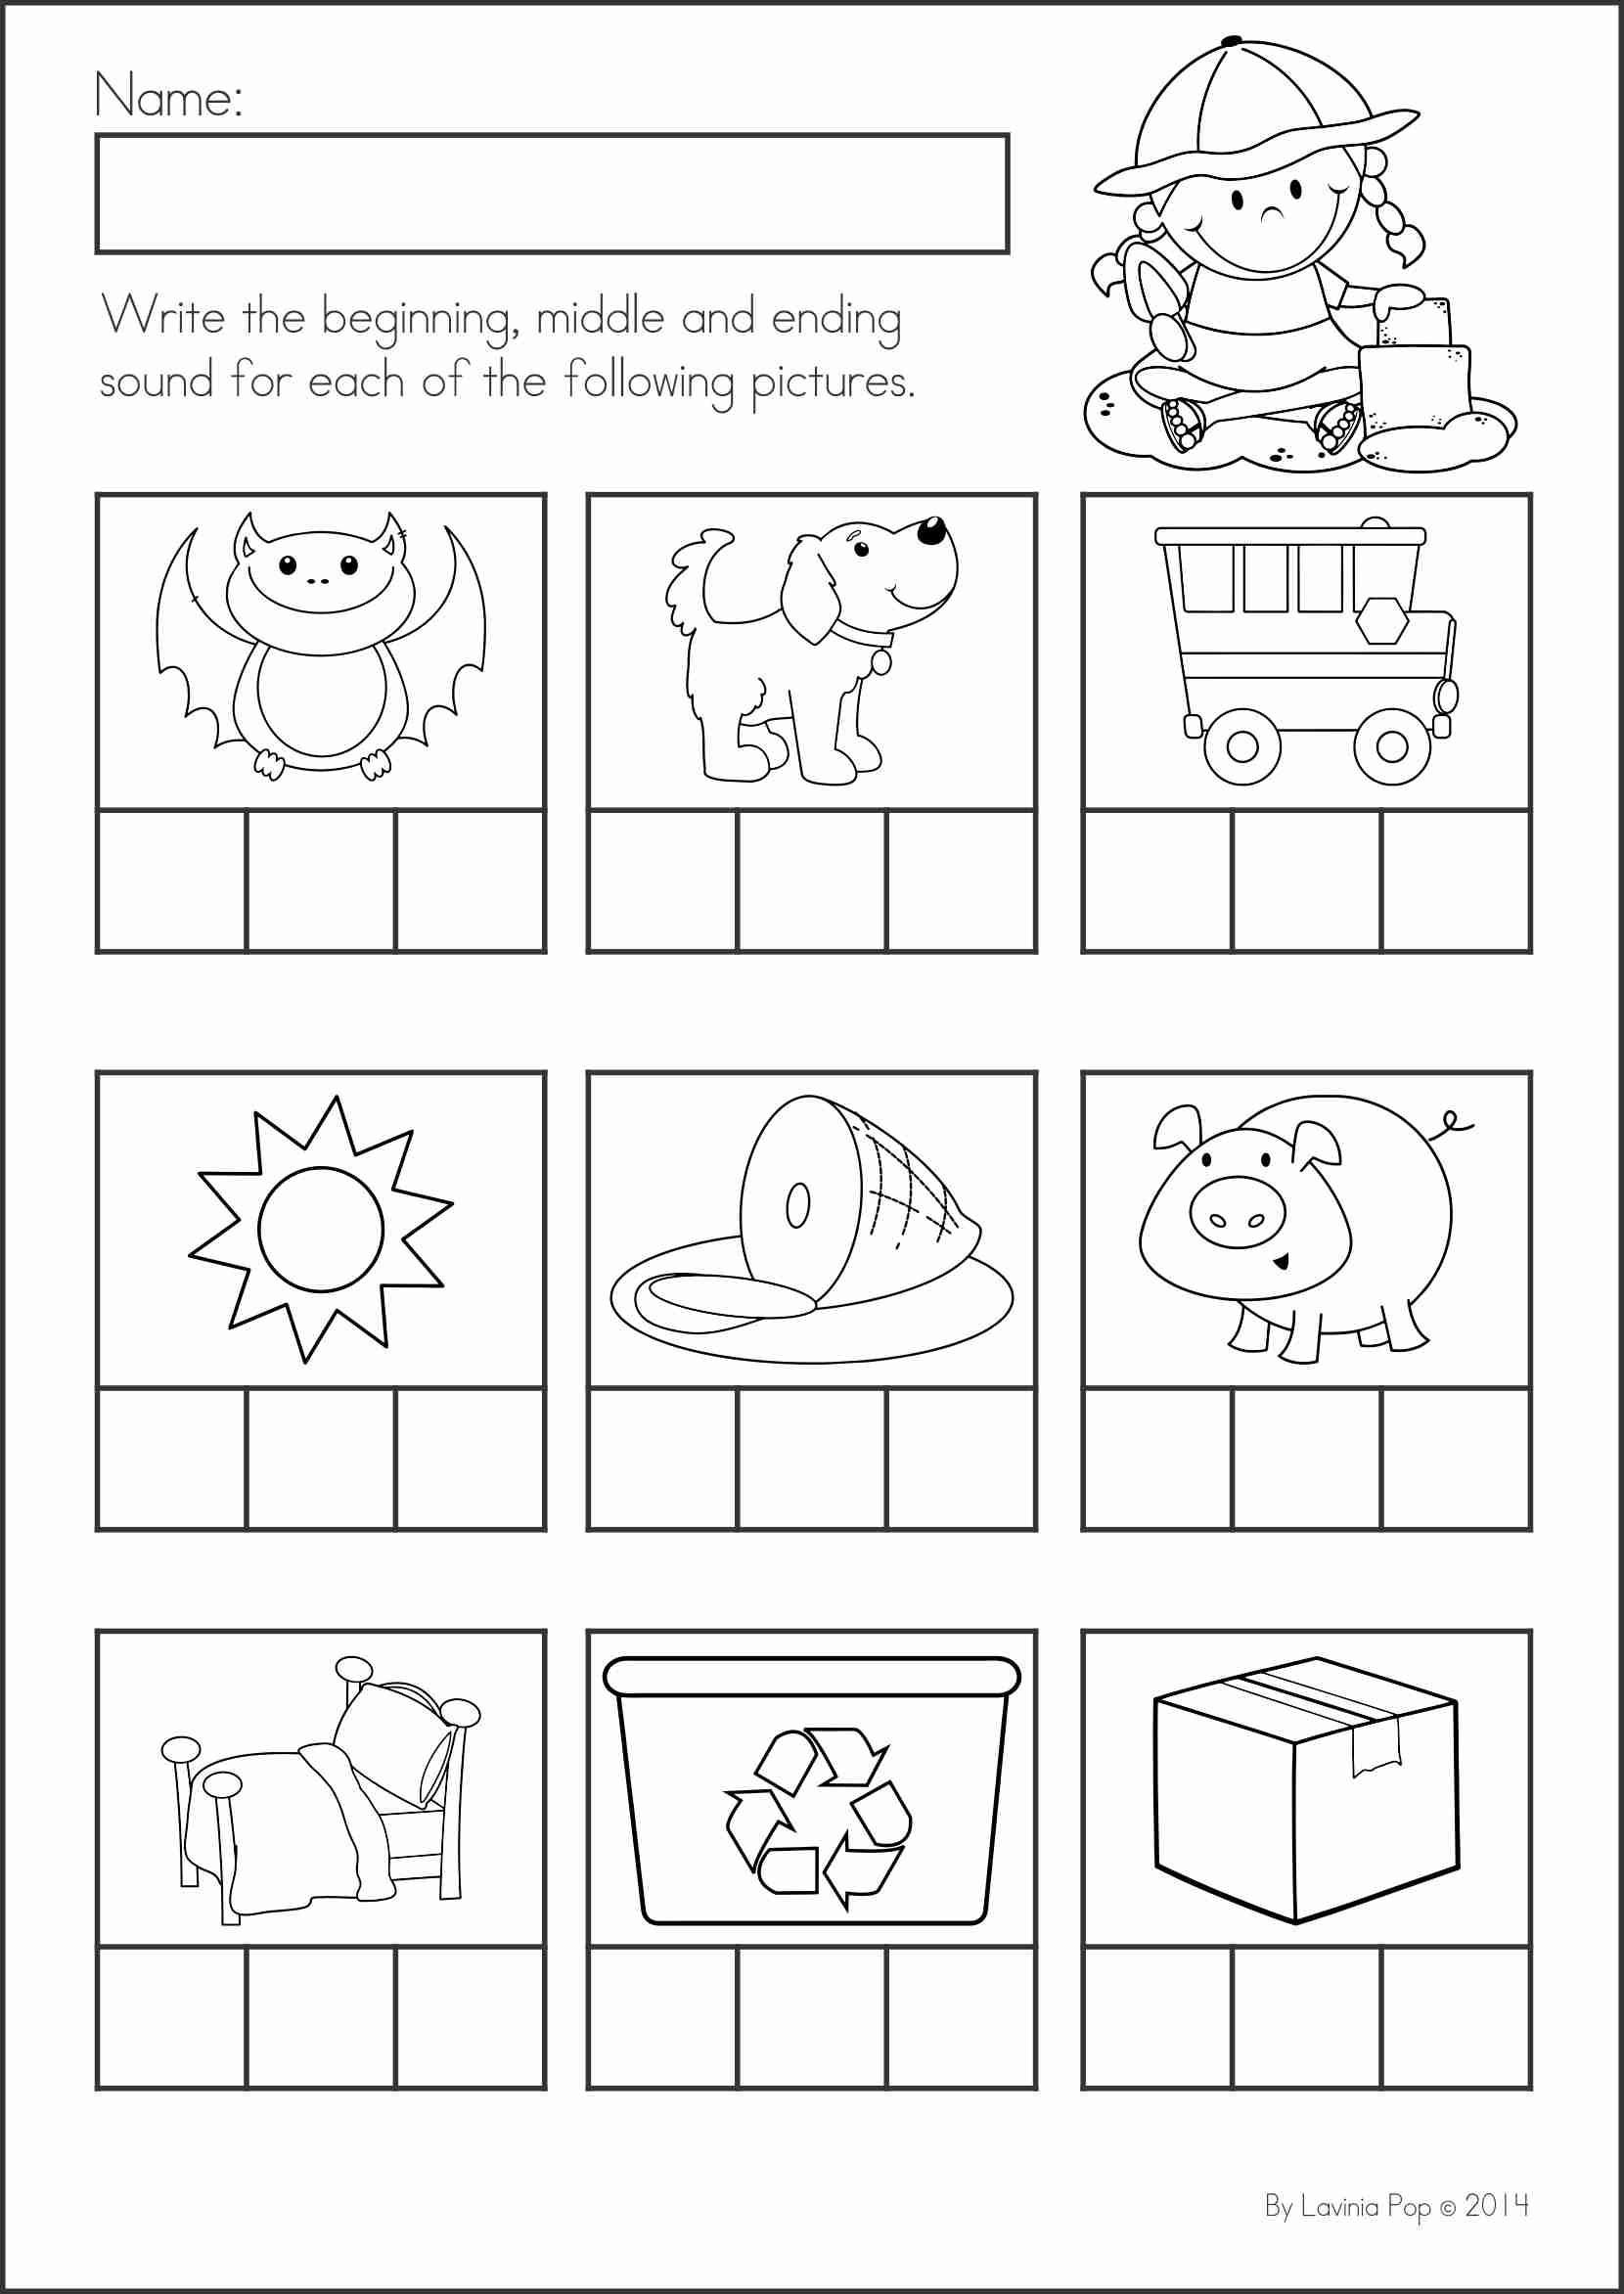 Sounding Out Words Worksheets Unique Writing Cvc Words Worksheet